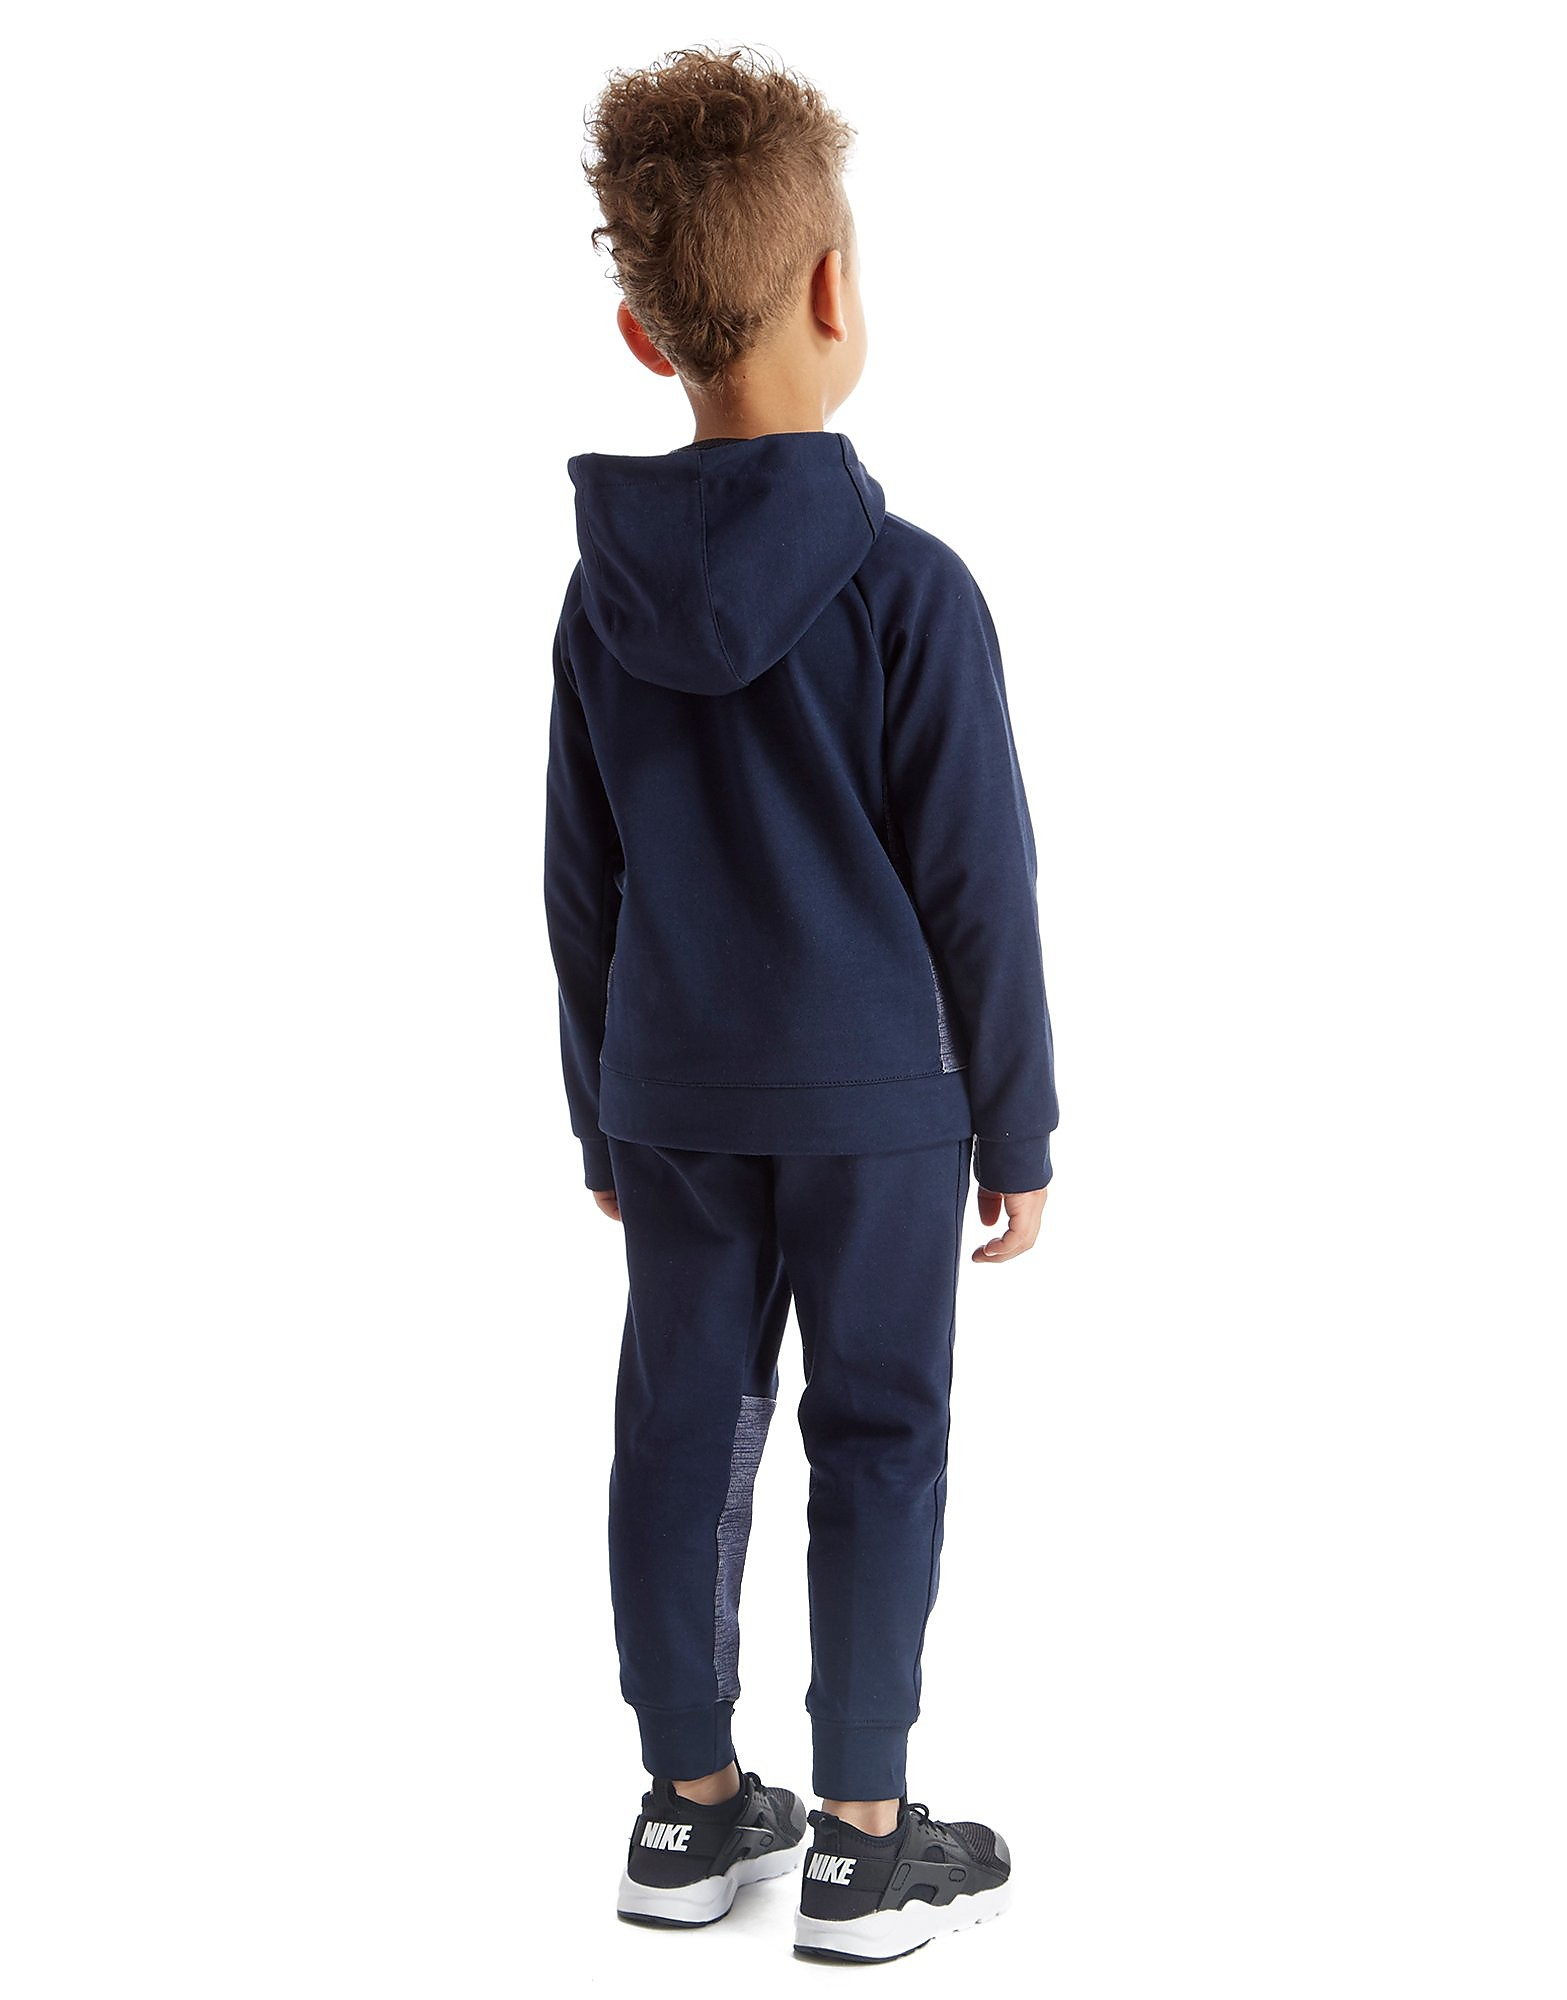 Nike Advanced Full Zip Suit Children